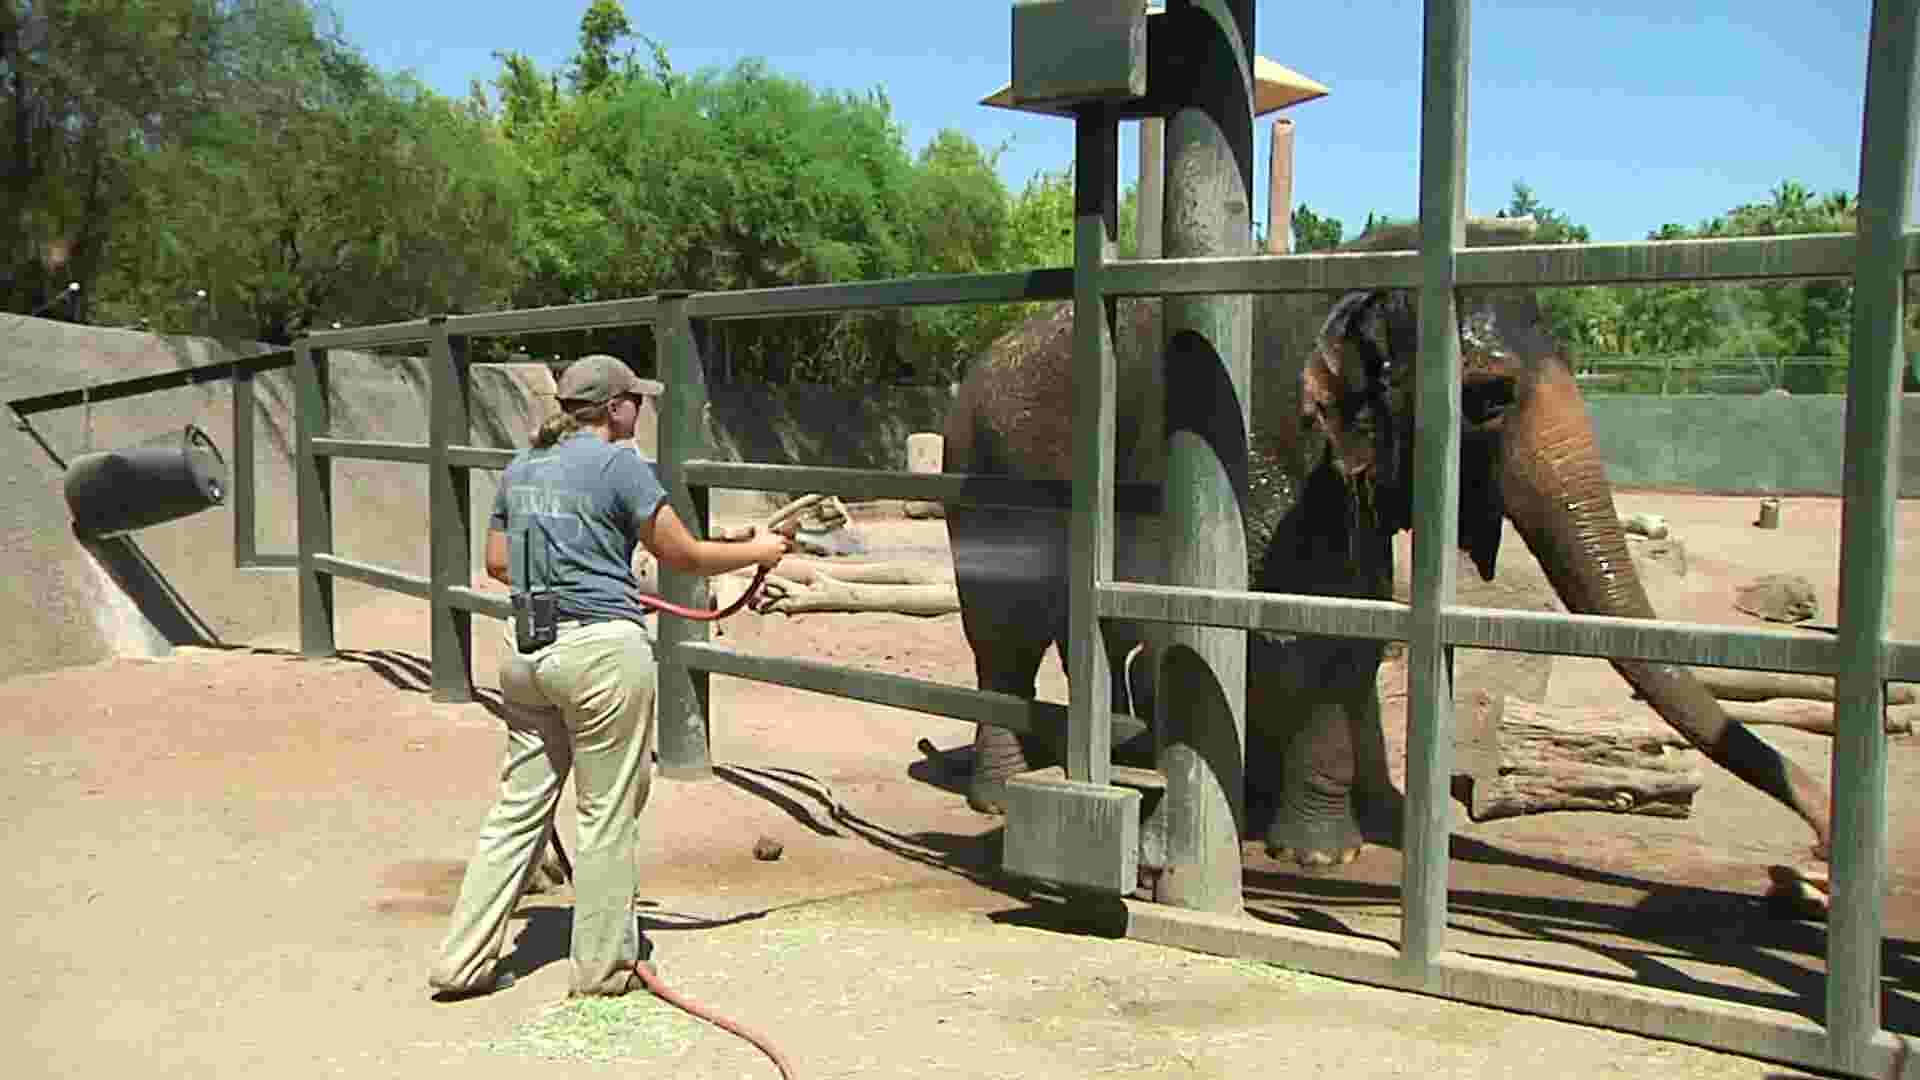 Phoenix Zoo beats the heat with water and ice